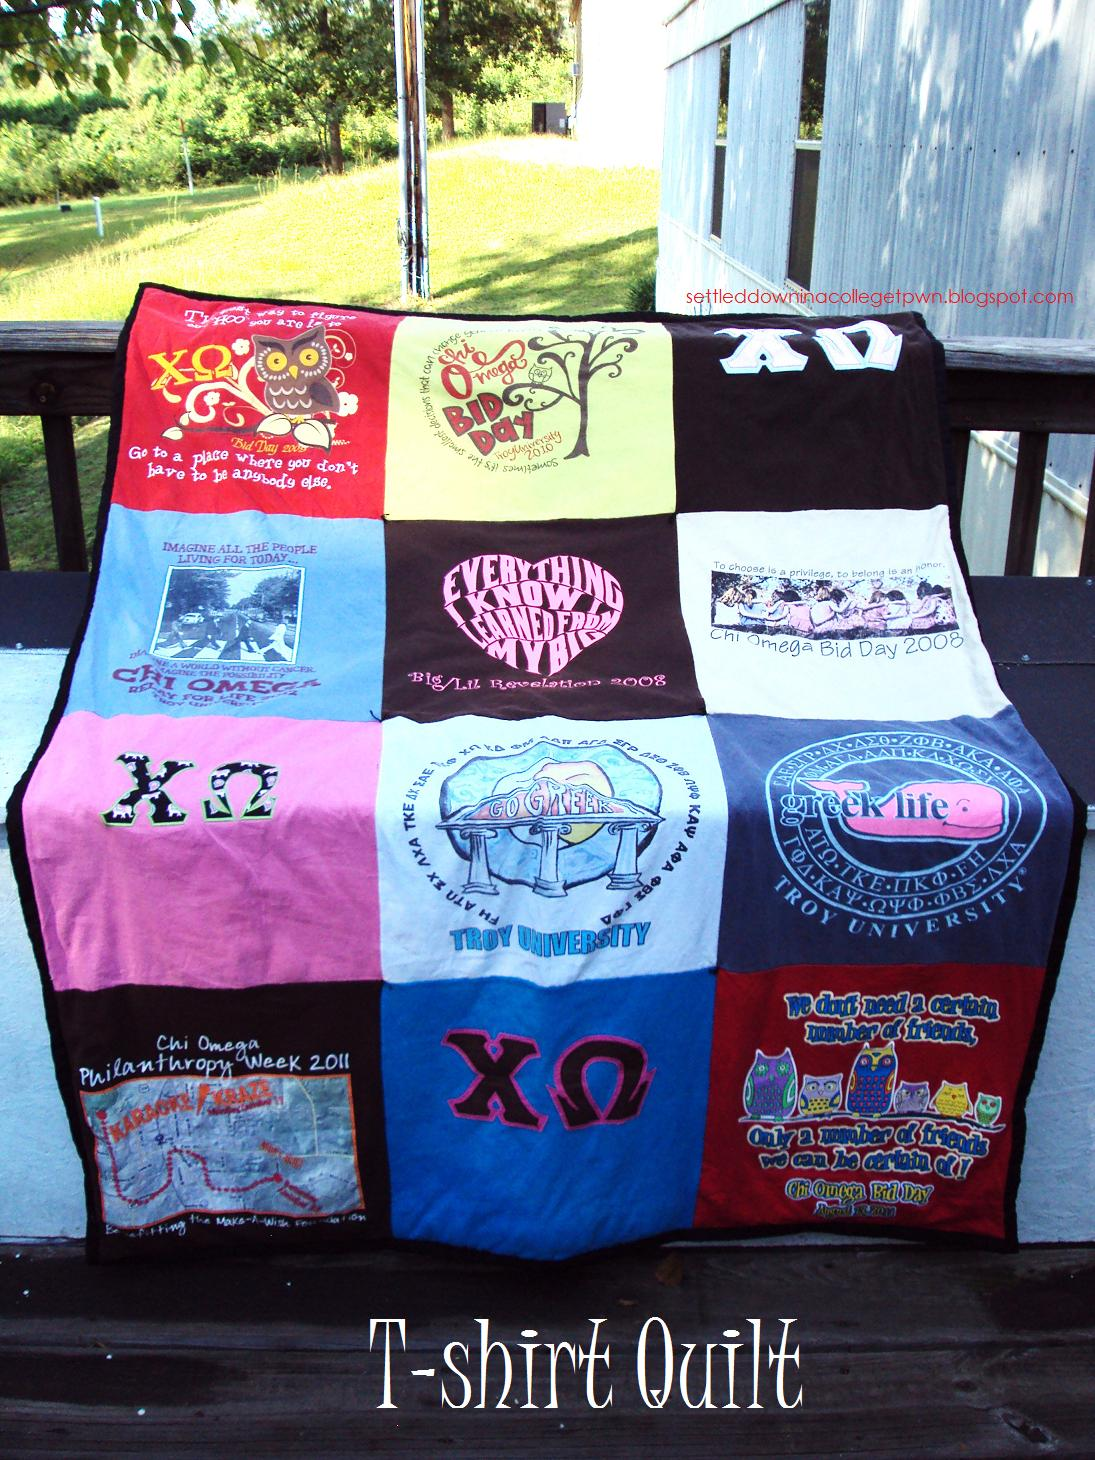 Settled Down In A College Town T Shirt Quilts The